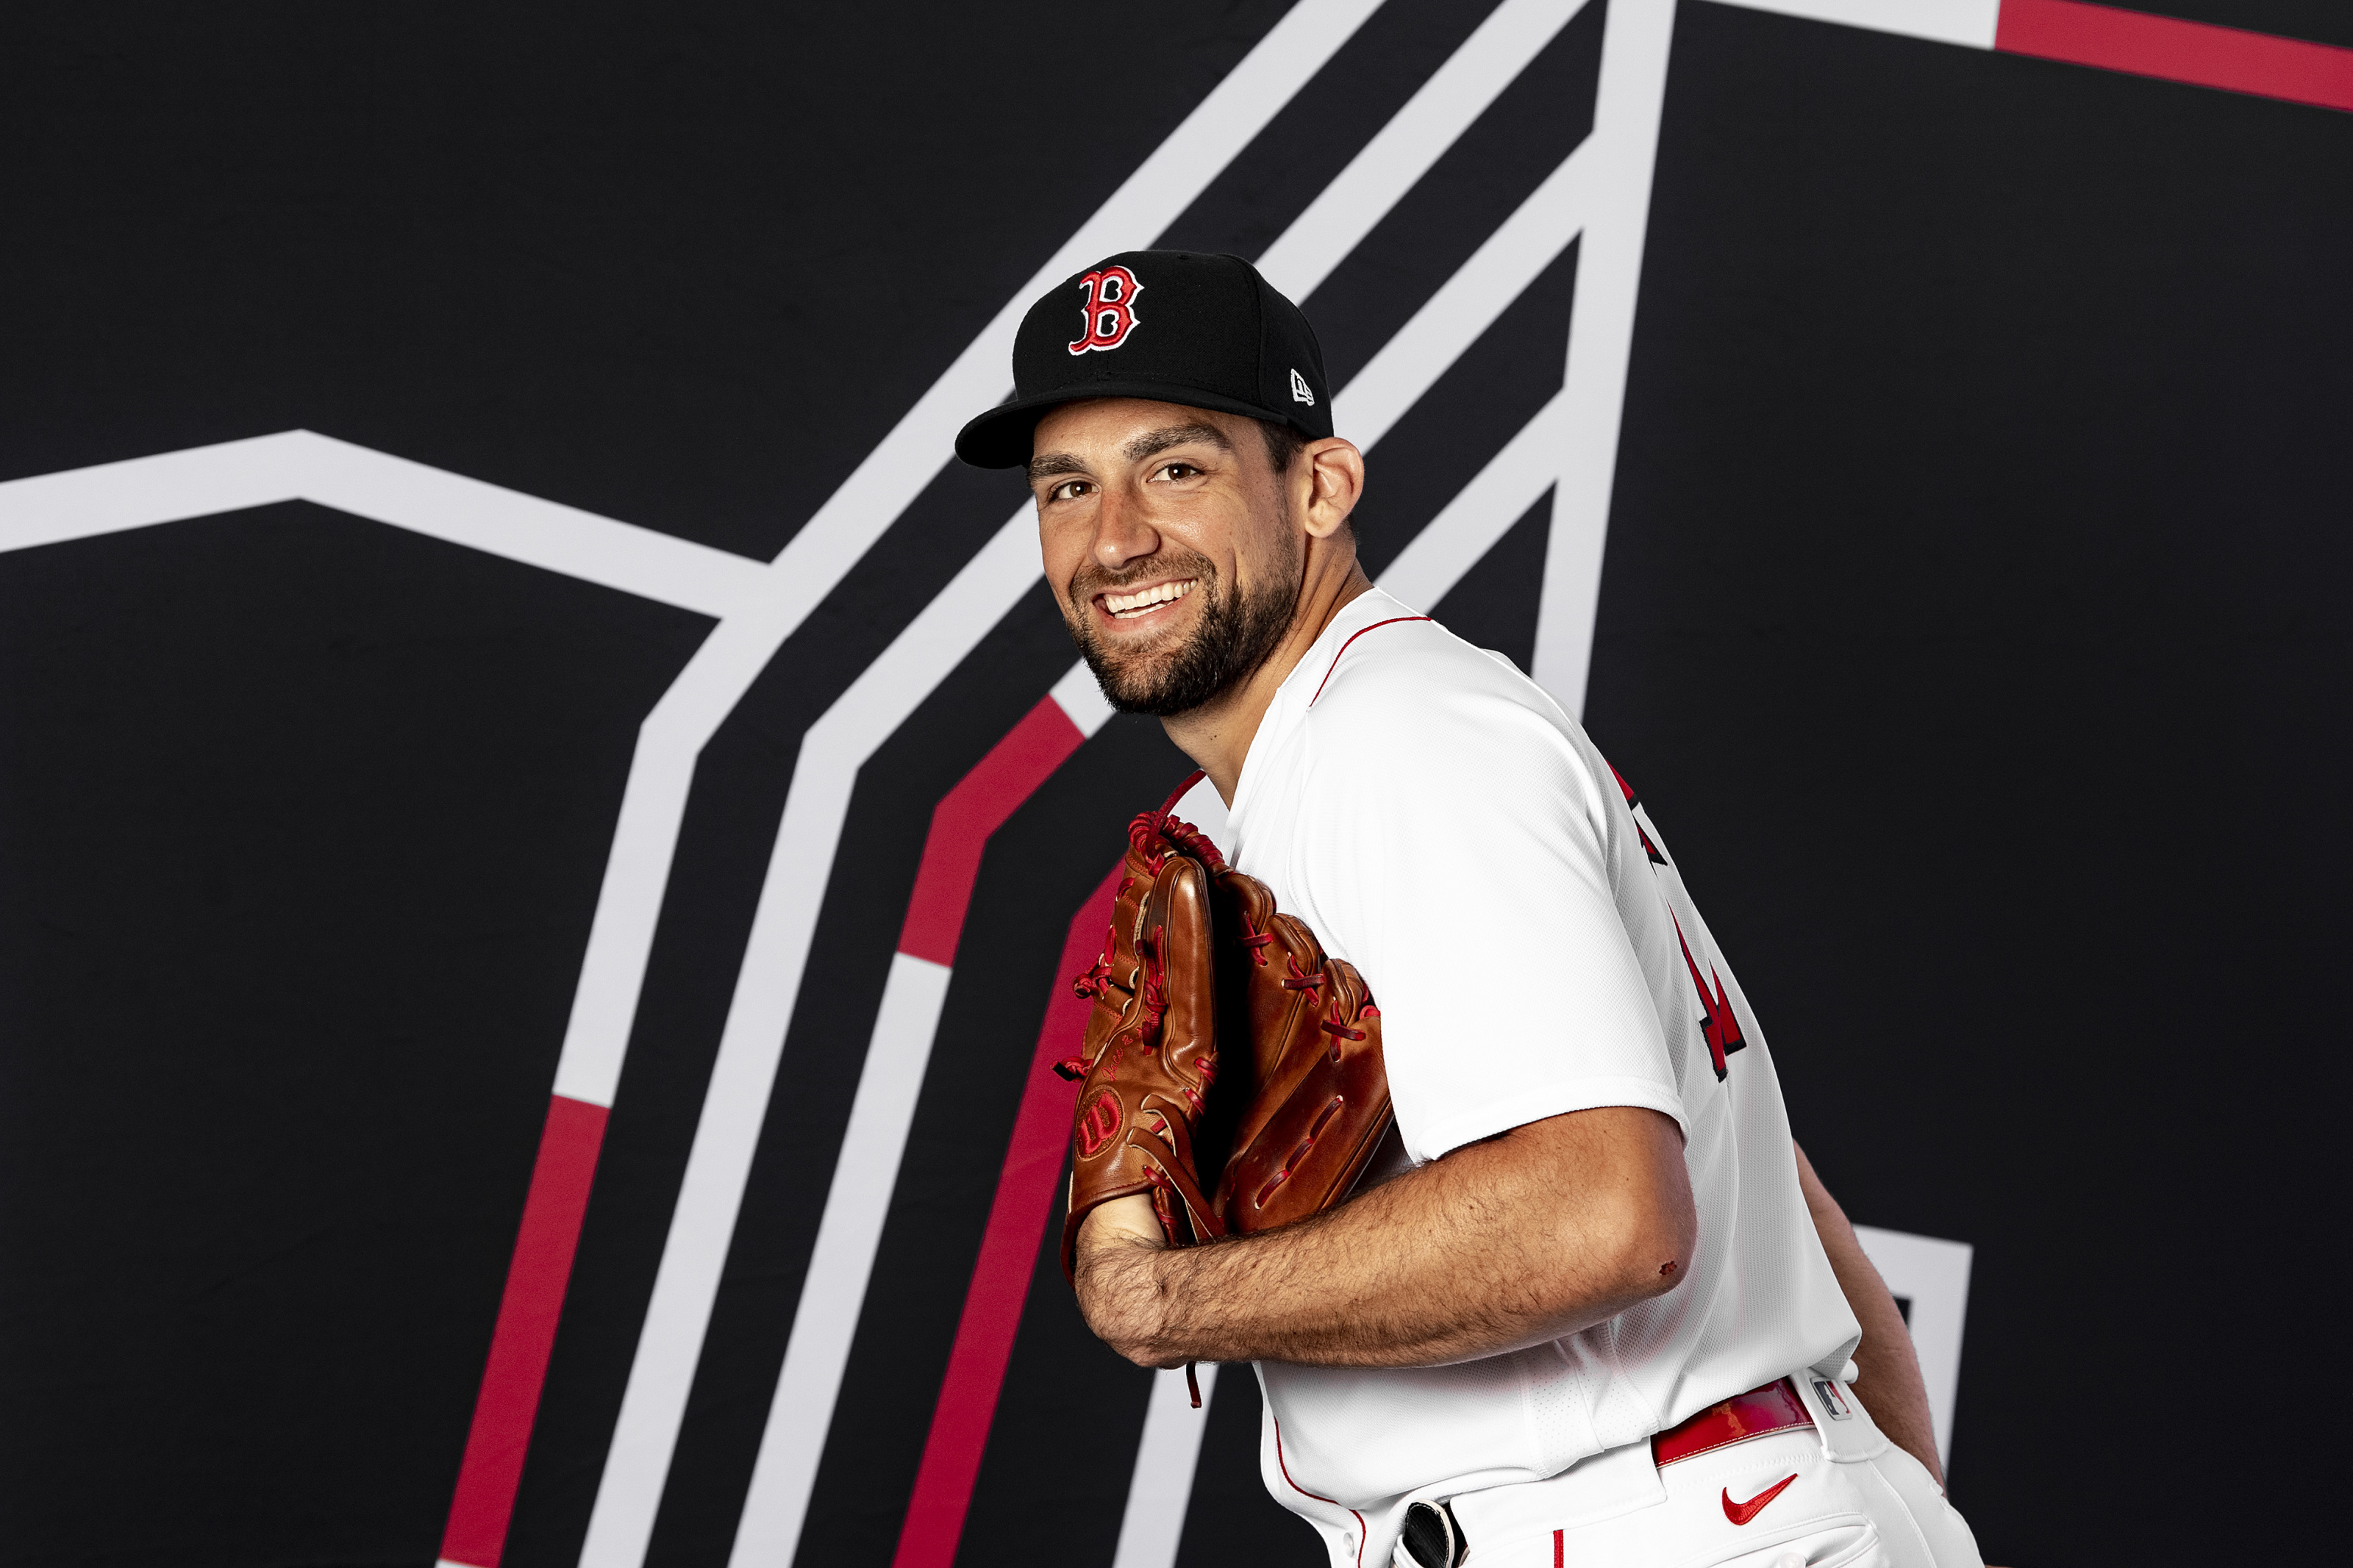 Red Sox: Nathan Eovaldi reminds fans what he's capable of in first start